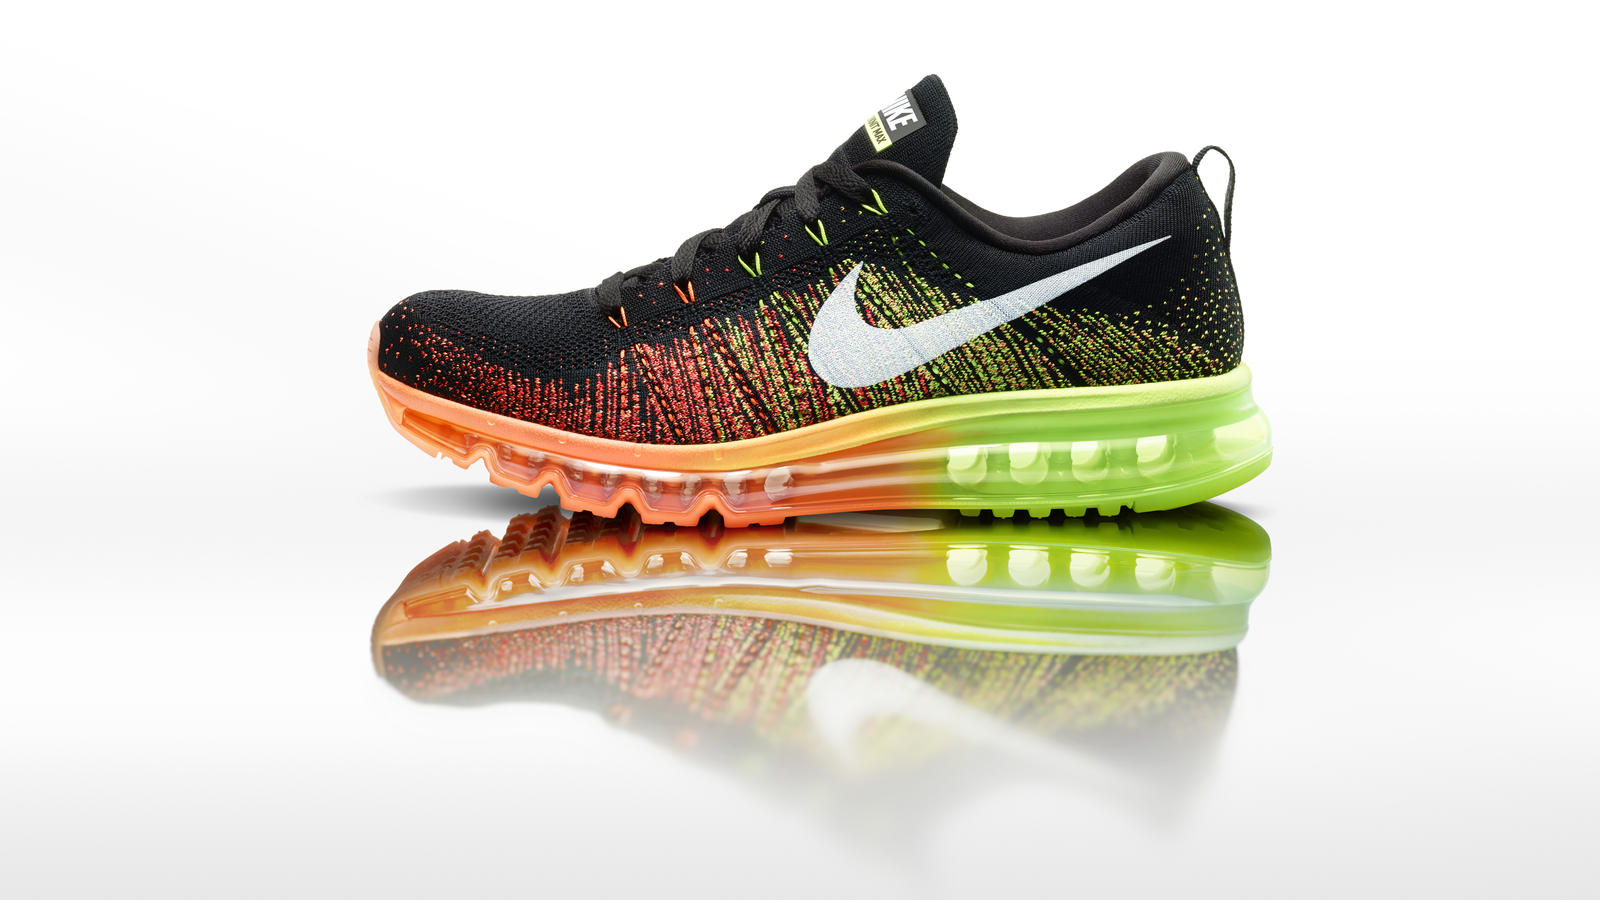 separation shoes 7180b d33bb Nike Unveils Nike Flyknit Air Max and Air Max 2014 - Nike News